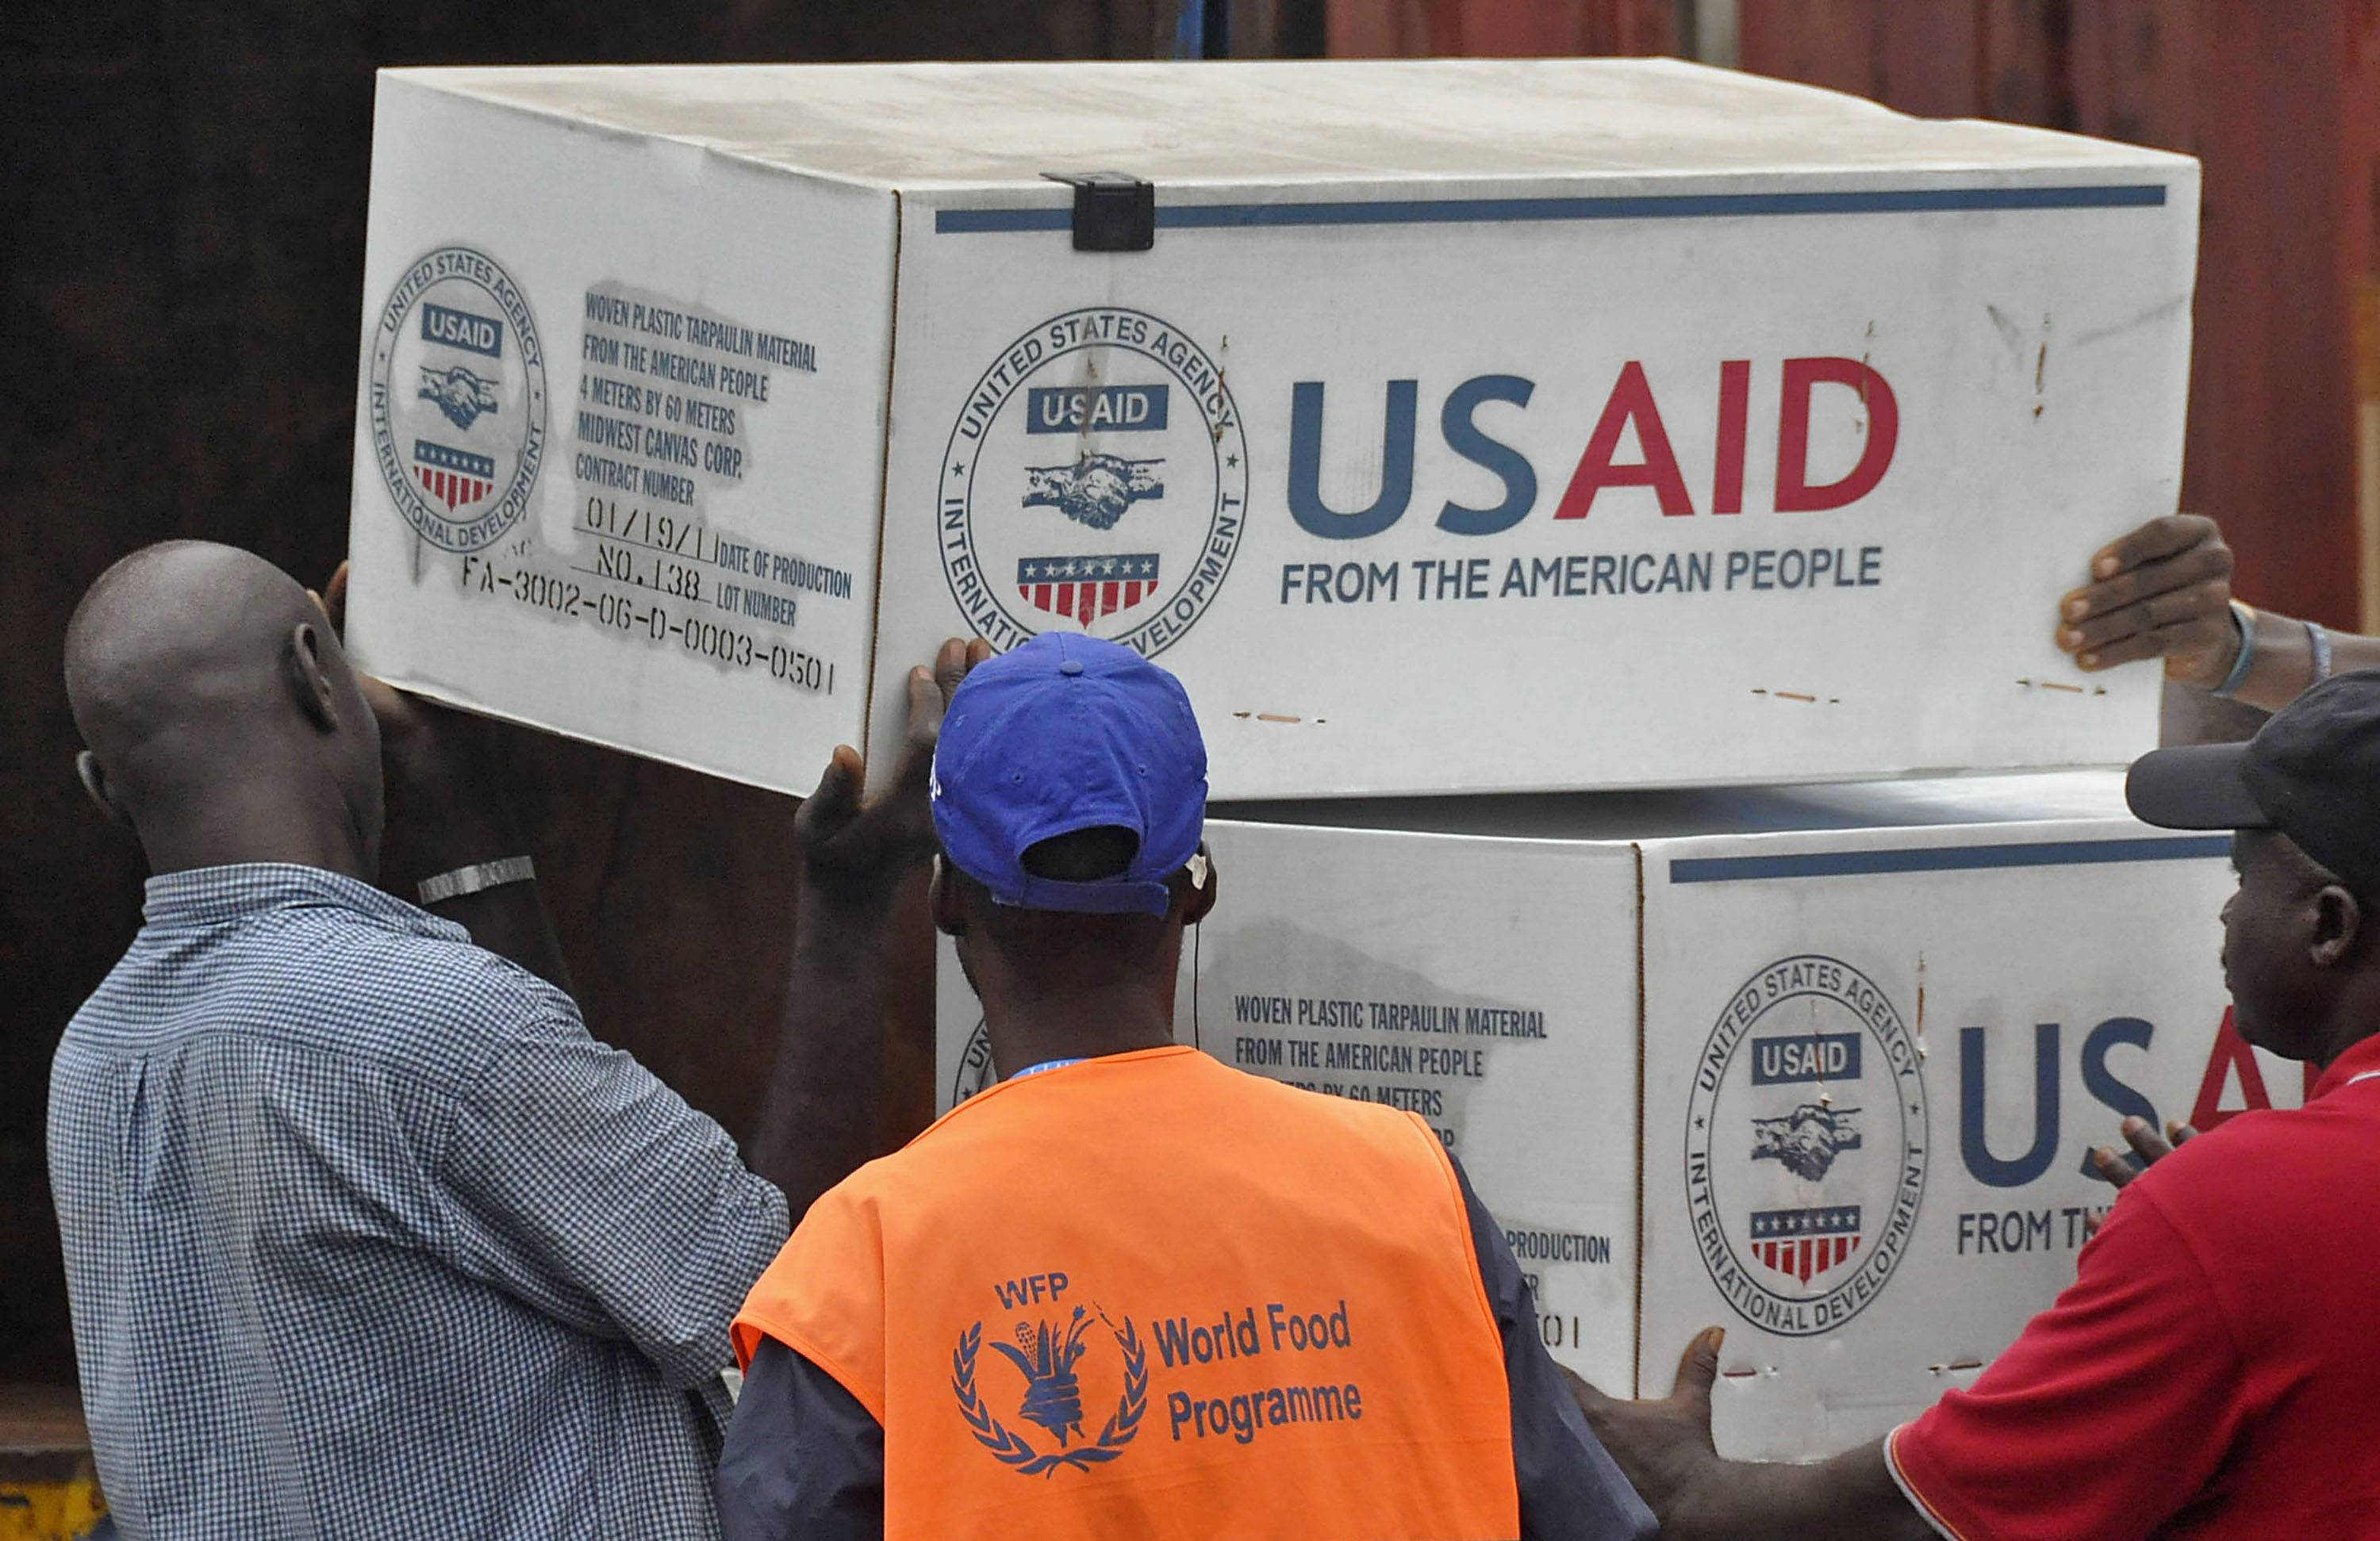 American Aid goods are loaded onto a truck after it arrived by airplane, to be used in the fight against the Ebola virus spreading in the city of Monrovia, Liberia, Sunday. Two alarming new cases of Ebola have emerged in Nigeria, widening the circle of people sickened beyond the immediate group of caregivers who treated a dying airline passenger in one of Africa's largest cities.